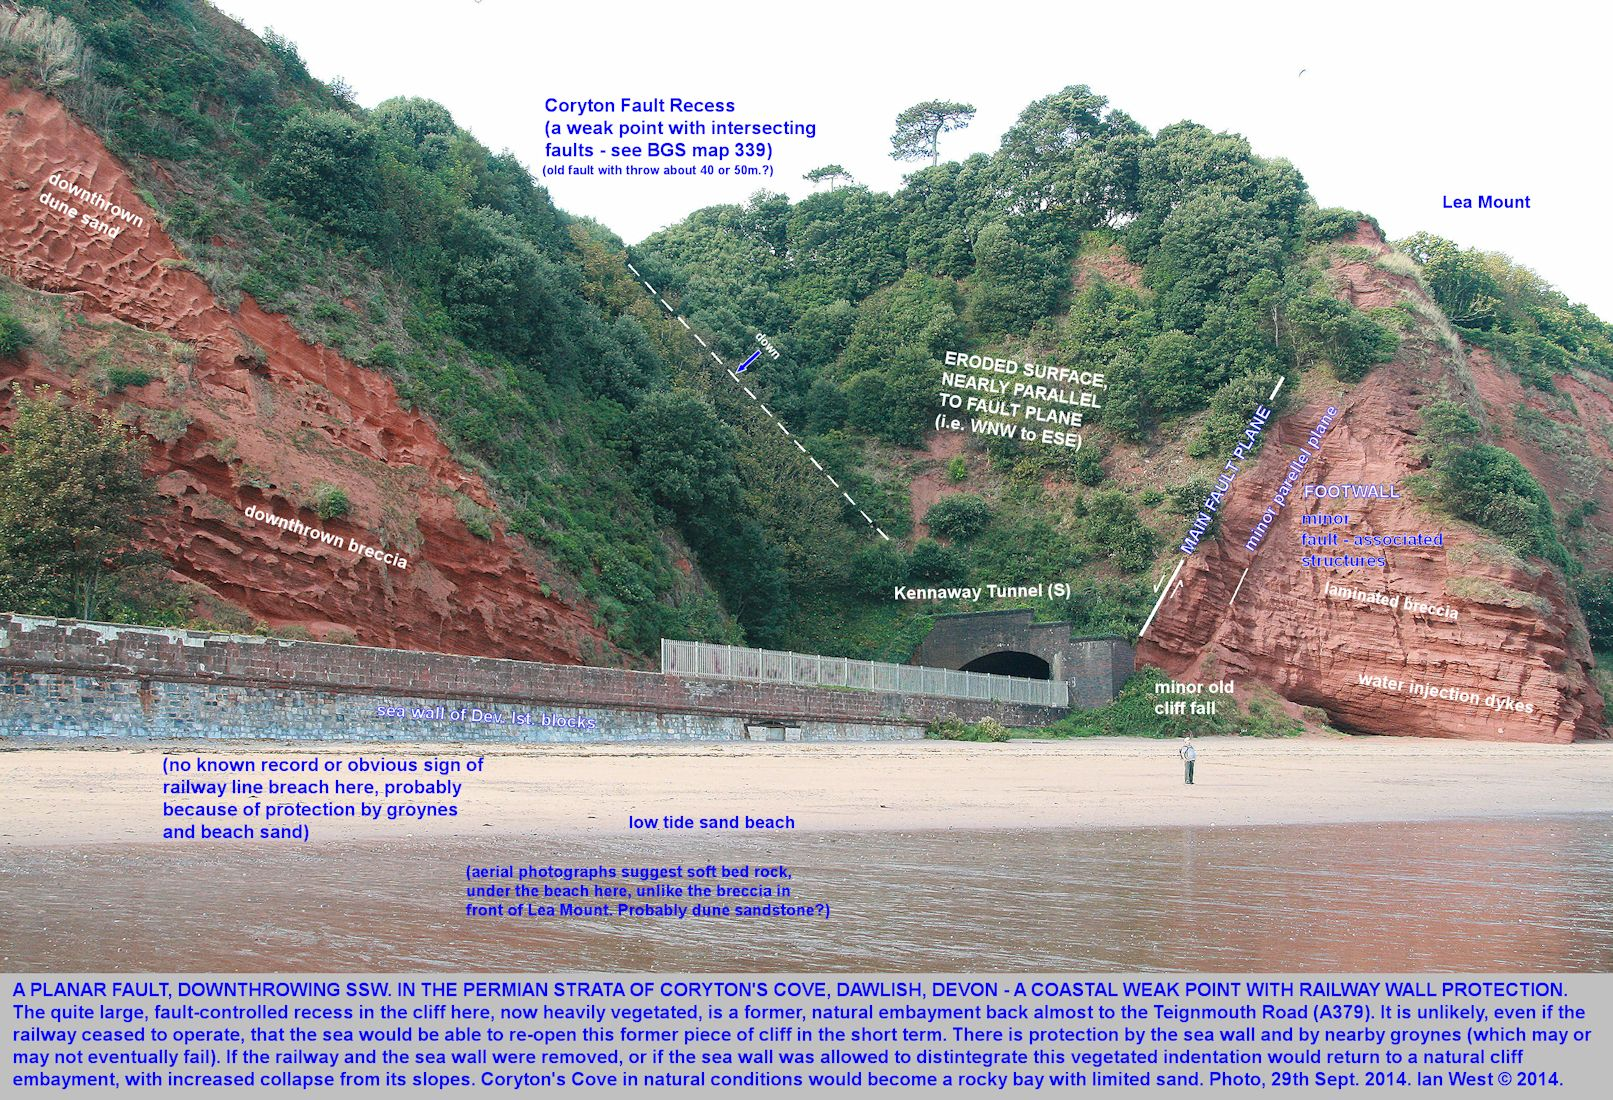 A normal fault in the northern part of Coryton's Cove, Dawlish, Devon  and downthrowing to the south at about 35m and producing a recess in the cliff, 29th September 2014